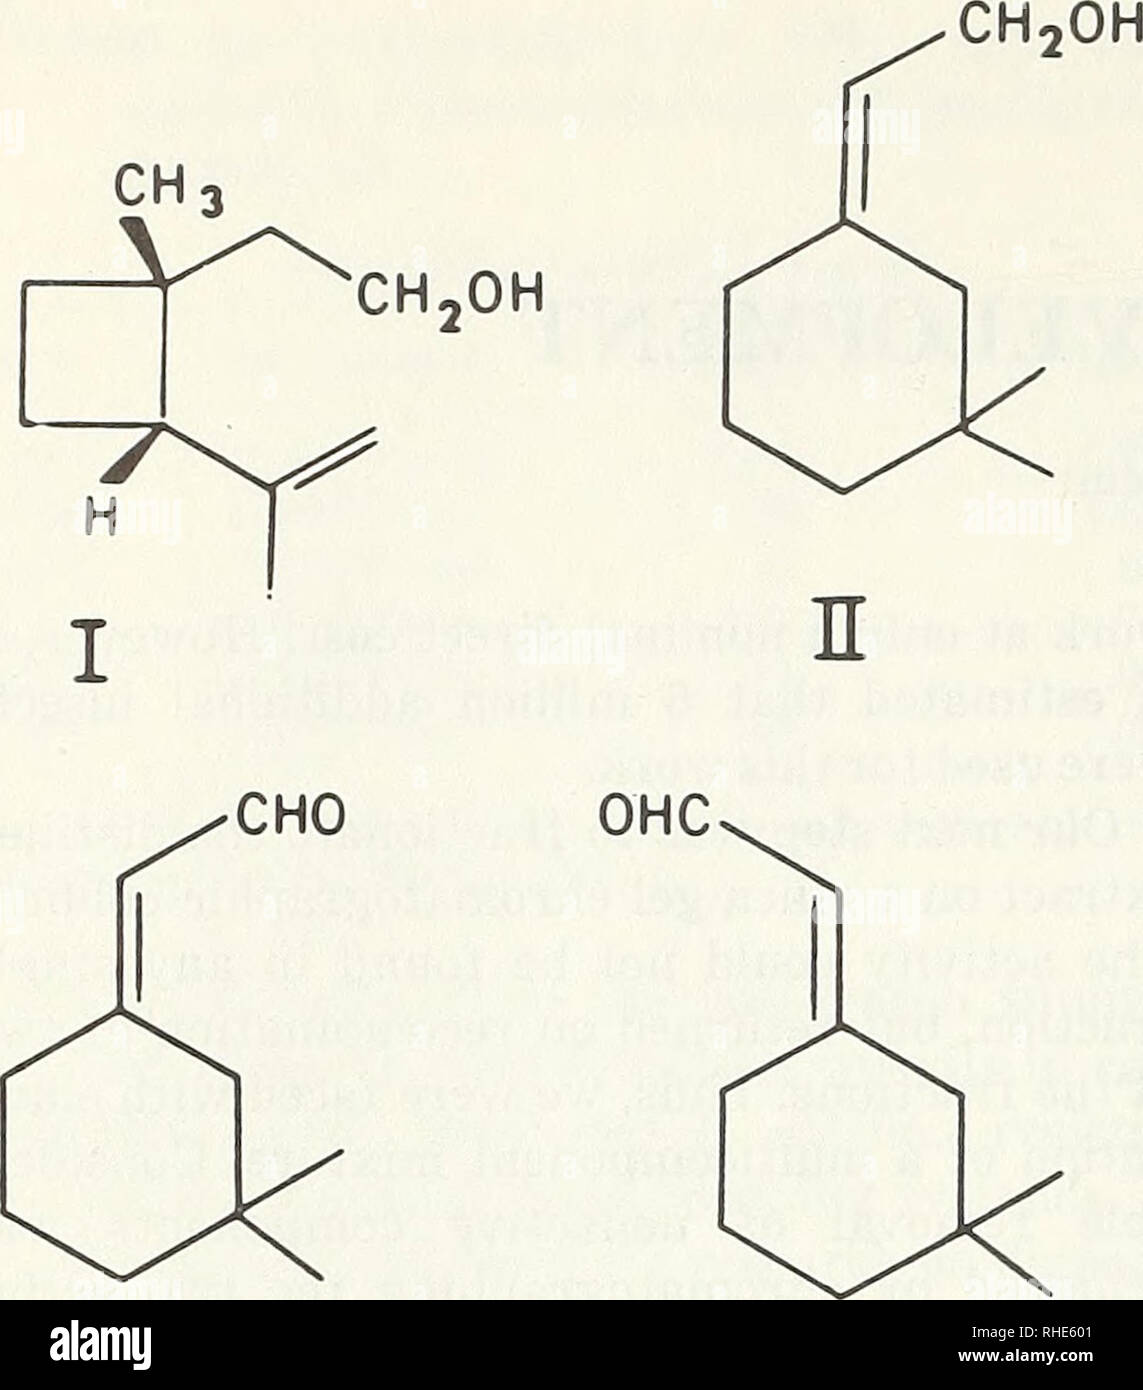 """. Boll weevil suppression, management, and elimination technology : proceedings of a conference, February 13-15, 1974, Memphis, Tennessee. Boll weevil, Control, Congresses. Figure 1.—Compounds. I, ( + )-ci's-2-Isopropenyl-l- methylcyclobutaneethanol. II, Z-3,3-Dimethyl-AK